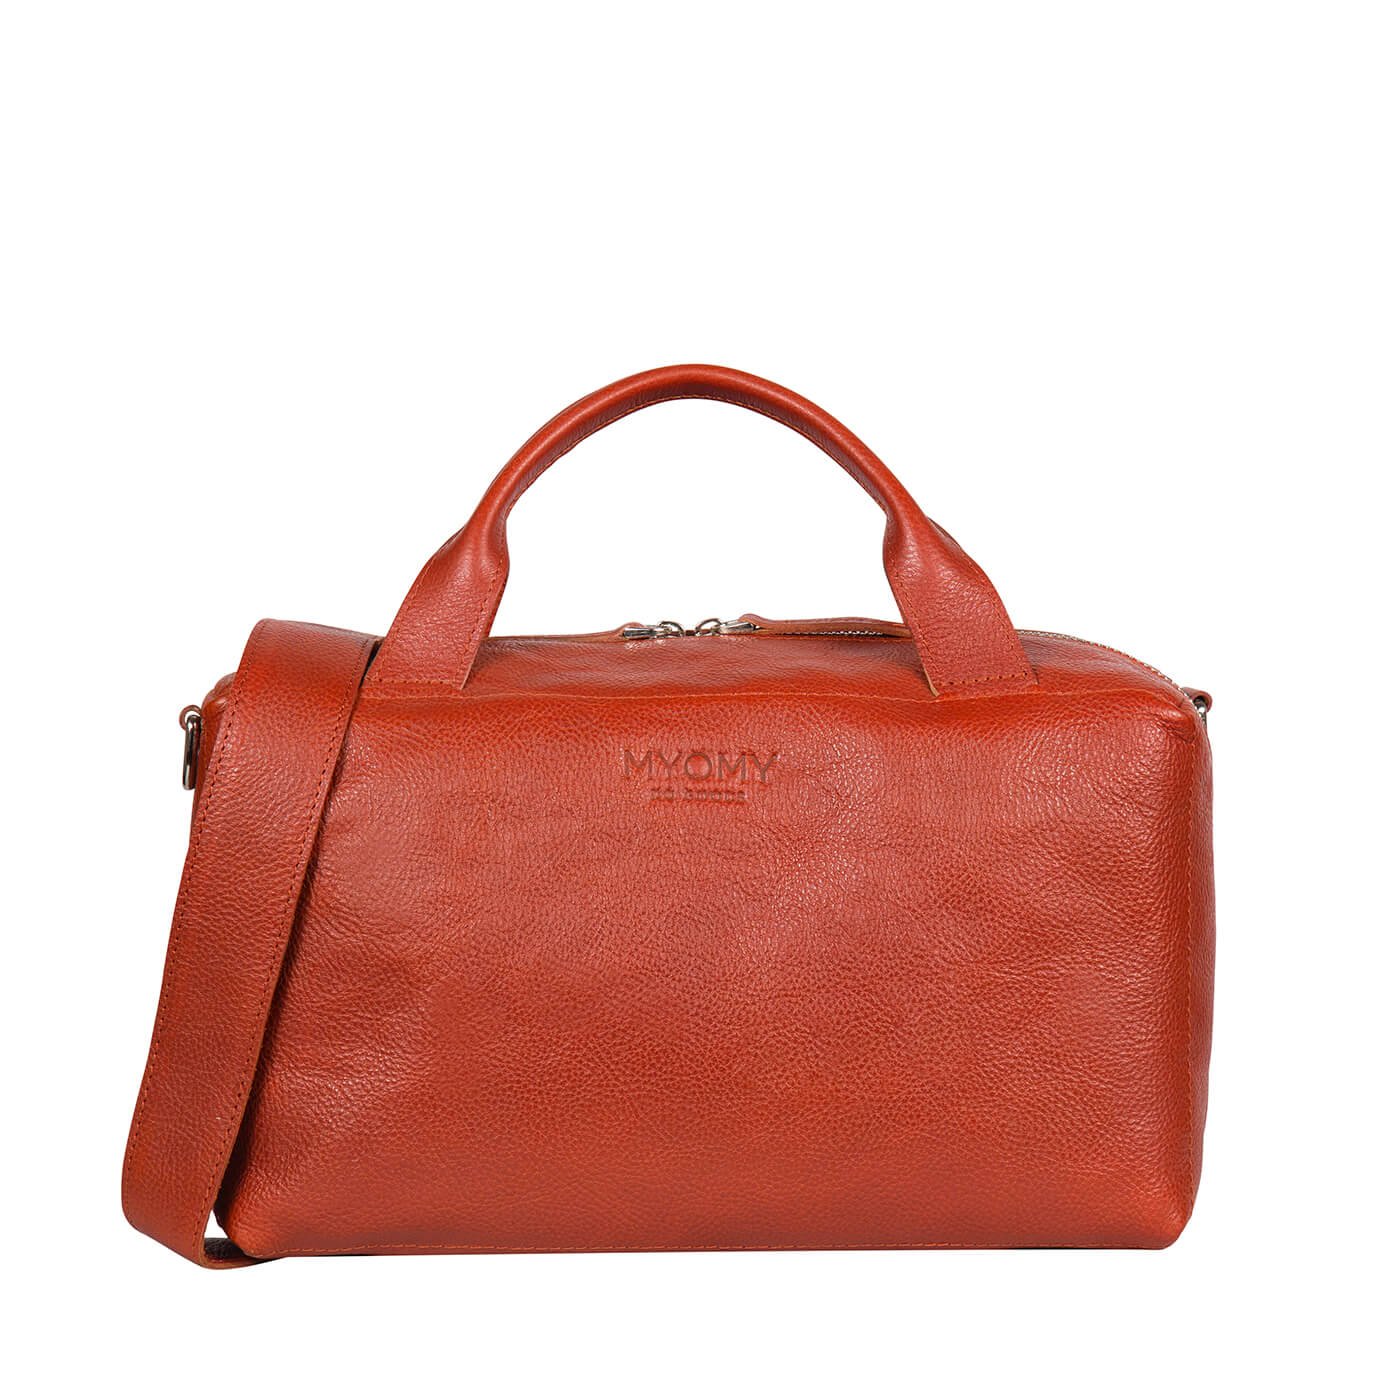 MY BOXY BAG Workbag - seville cognac